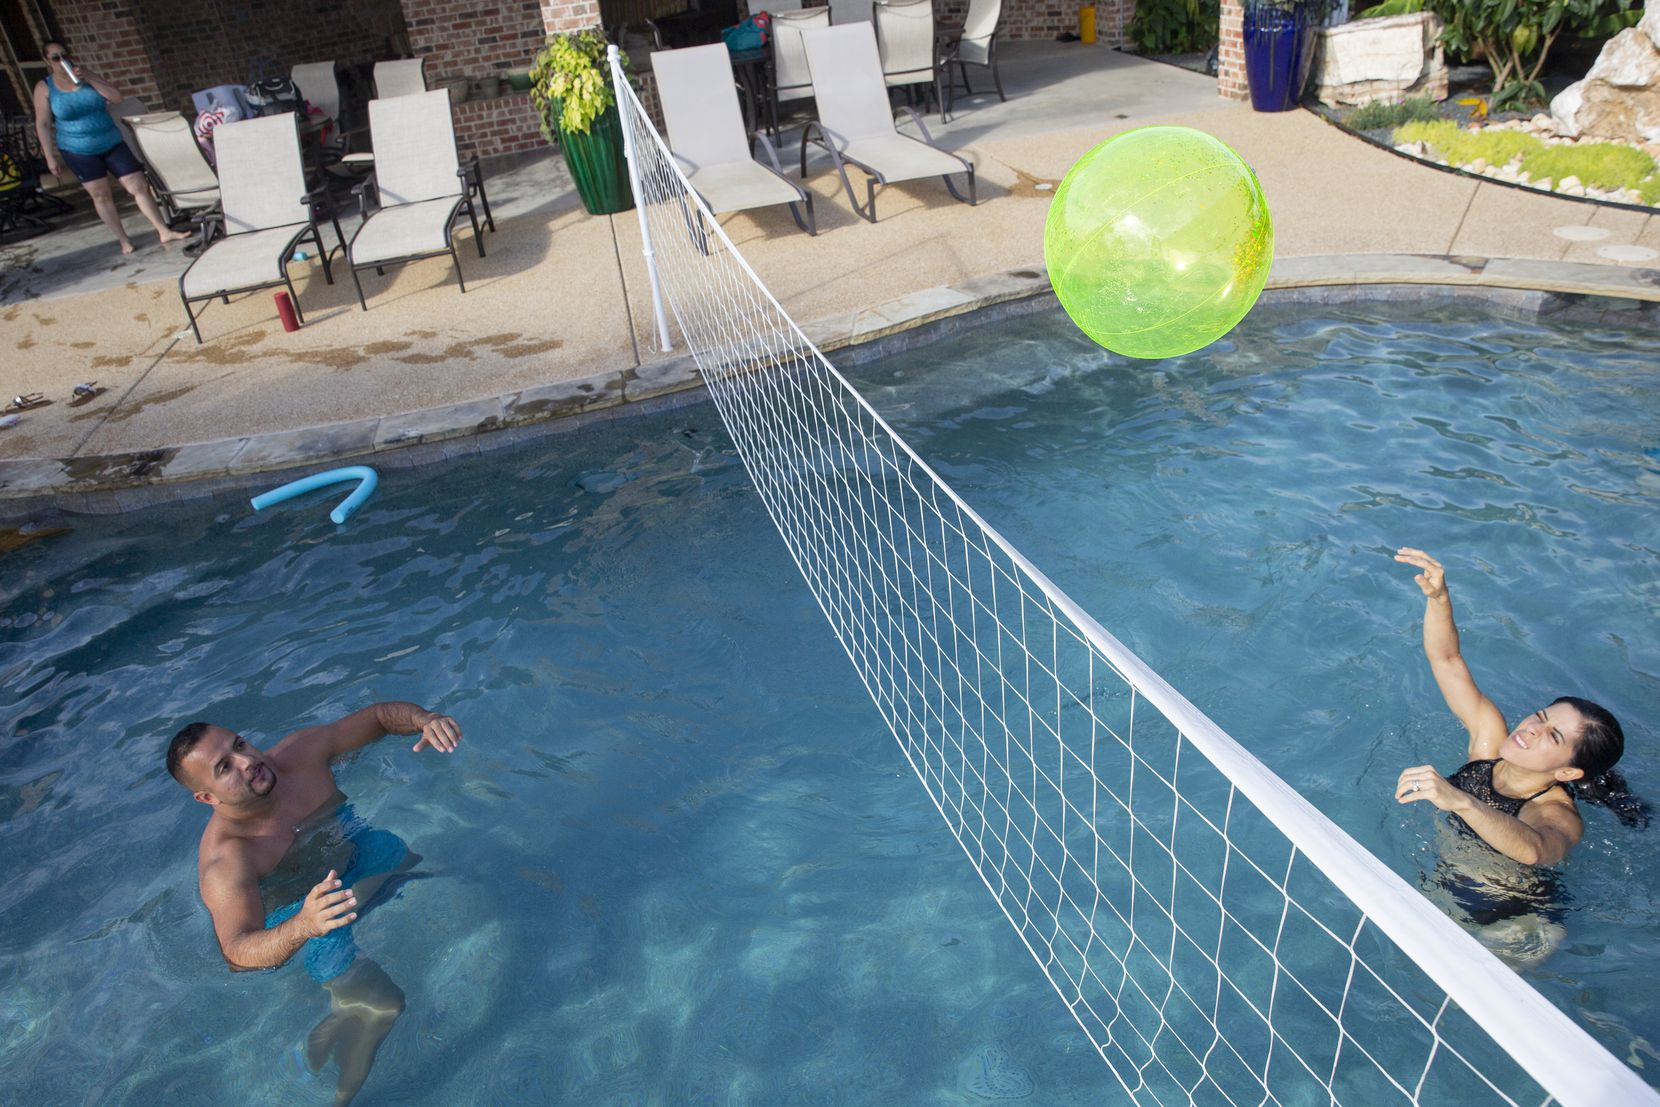 Tony Banda (left) and sister Imelda Mendoza pass the ball at a pool they rented using the Swimply app on July 26 in Waxahachie. Their sister Adriana Banda reserved the pool for the family.